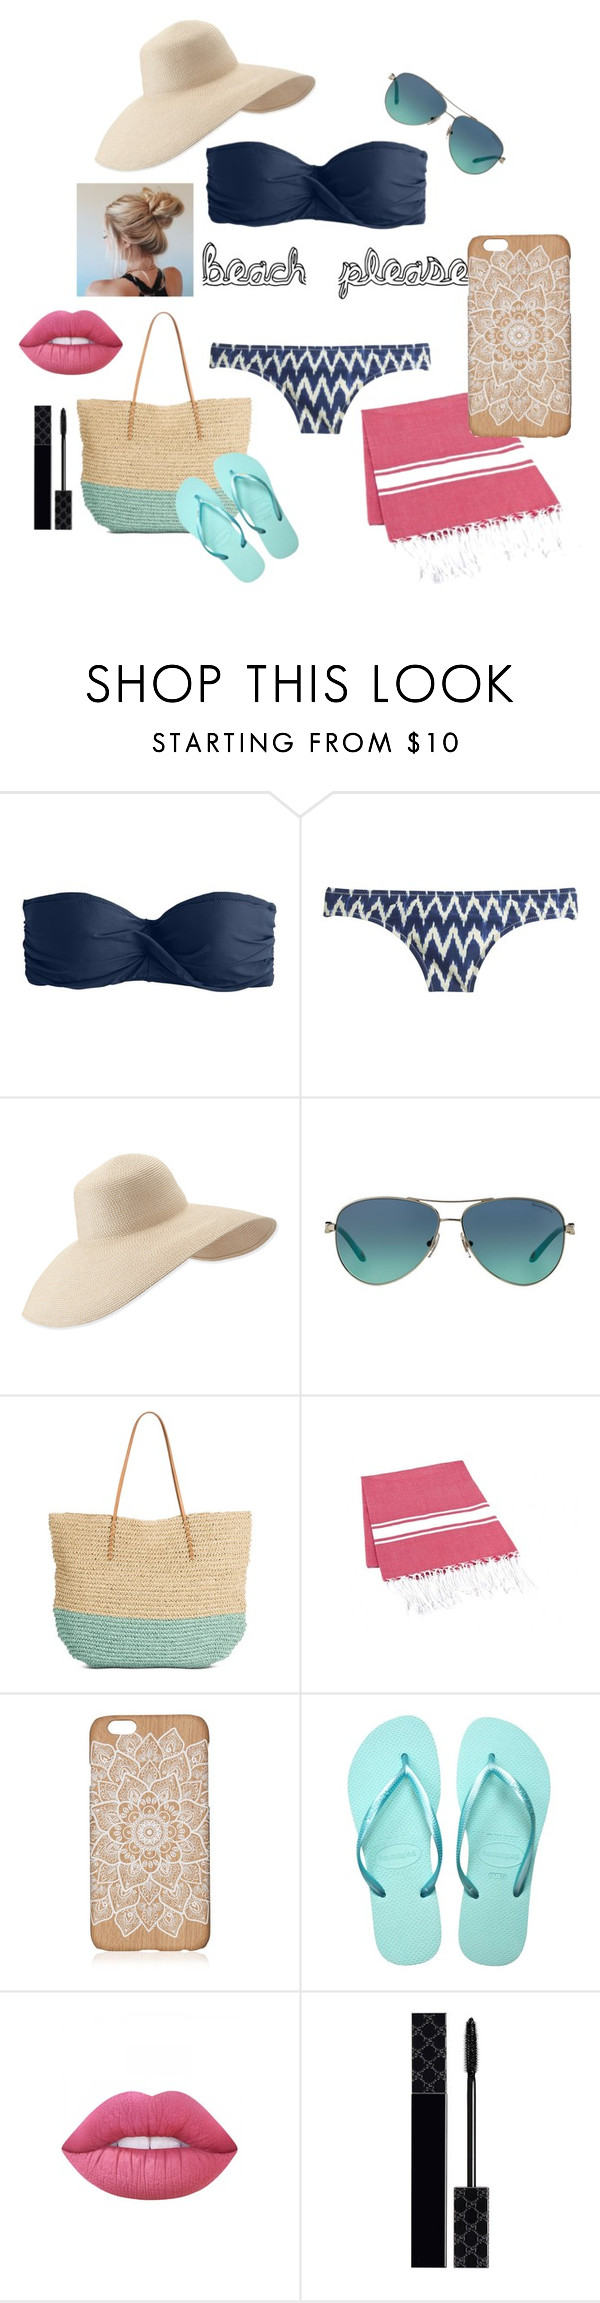 """""""beach please"""" by mmmescher on Polyvore featuring J.Crew, Eric Javits, Tiffany & Co., Target, Havaianas, Lime Crime and Gucci"""